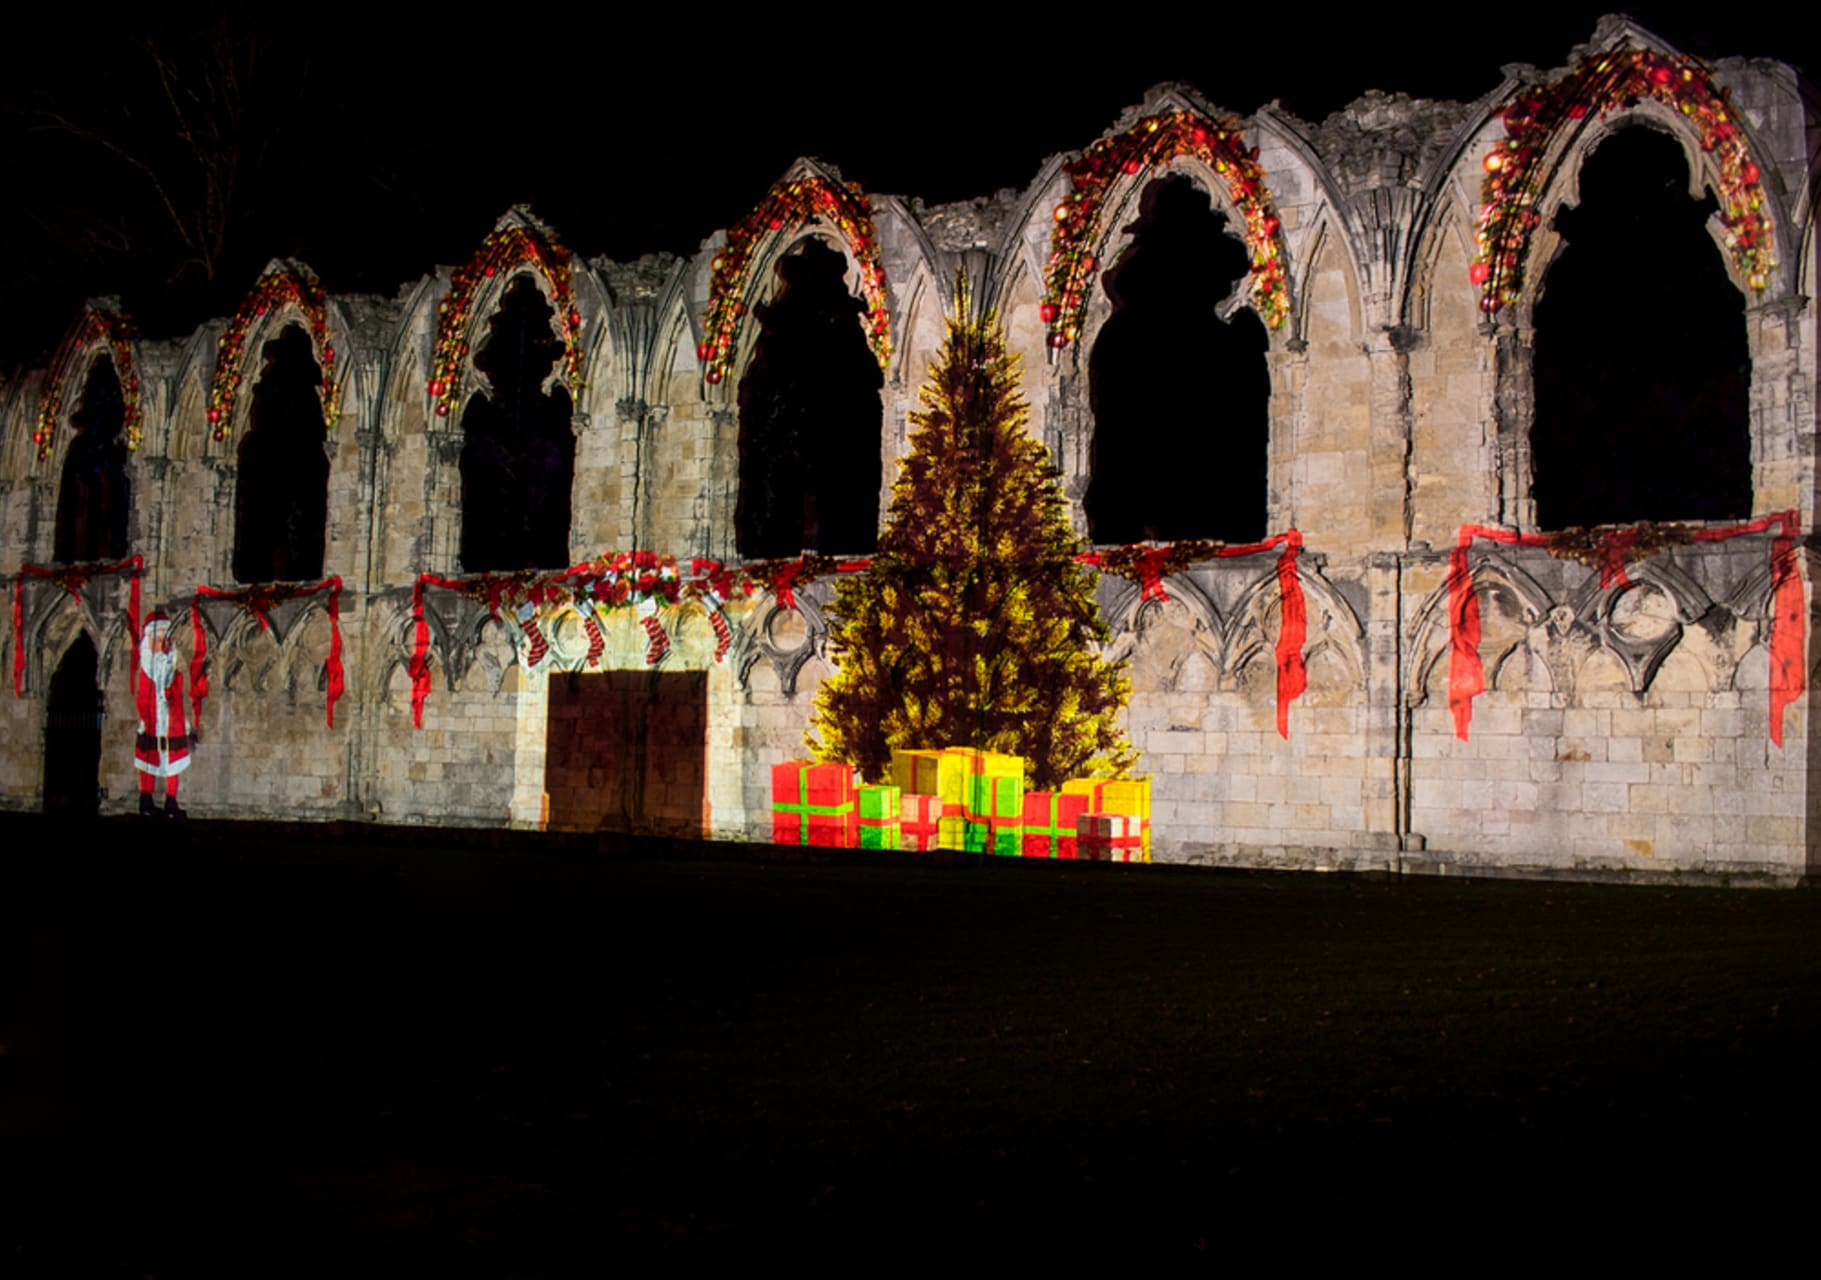 York - The History of Christmas in York